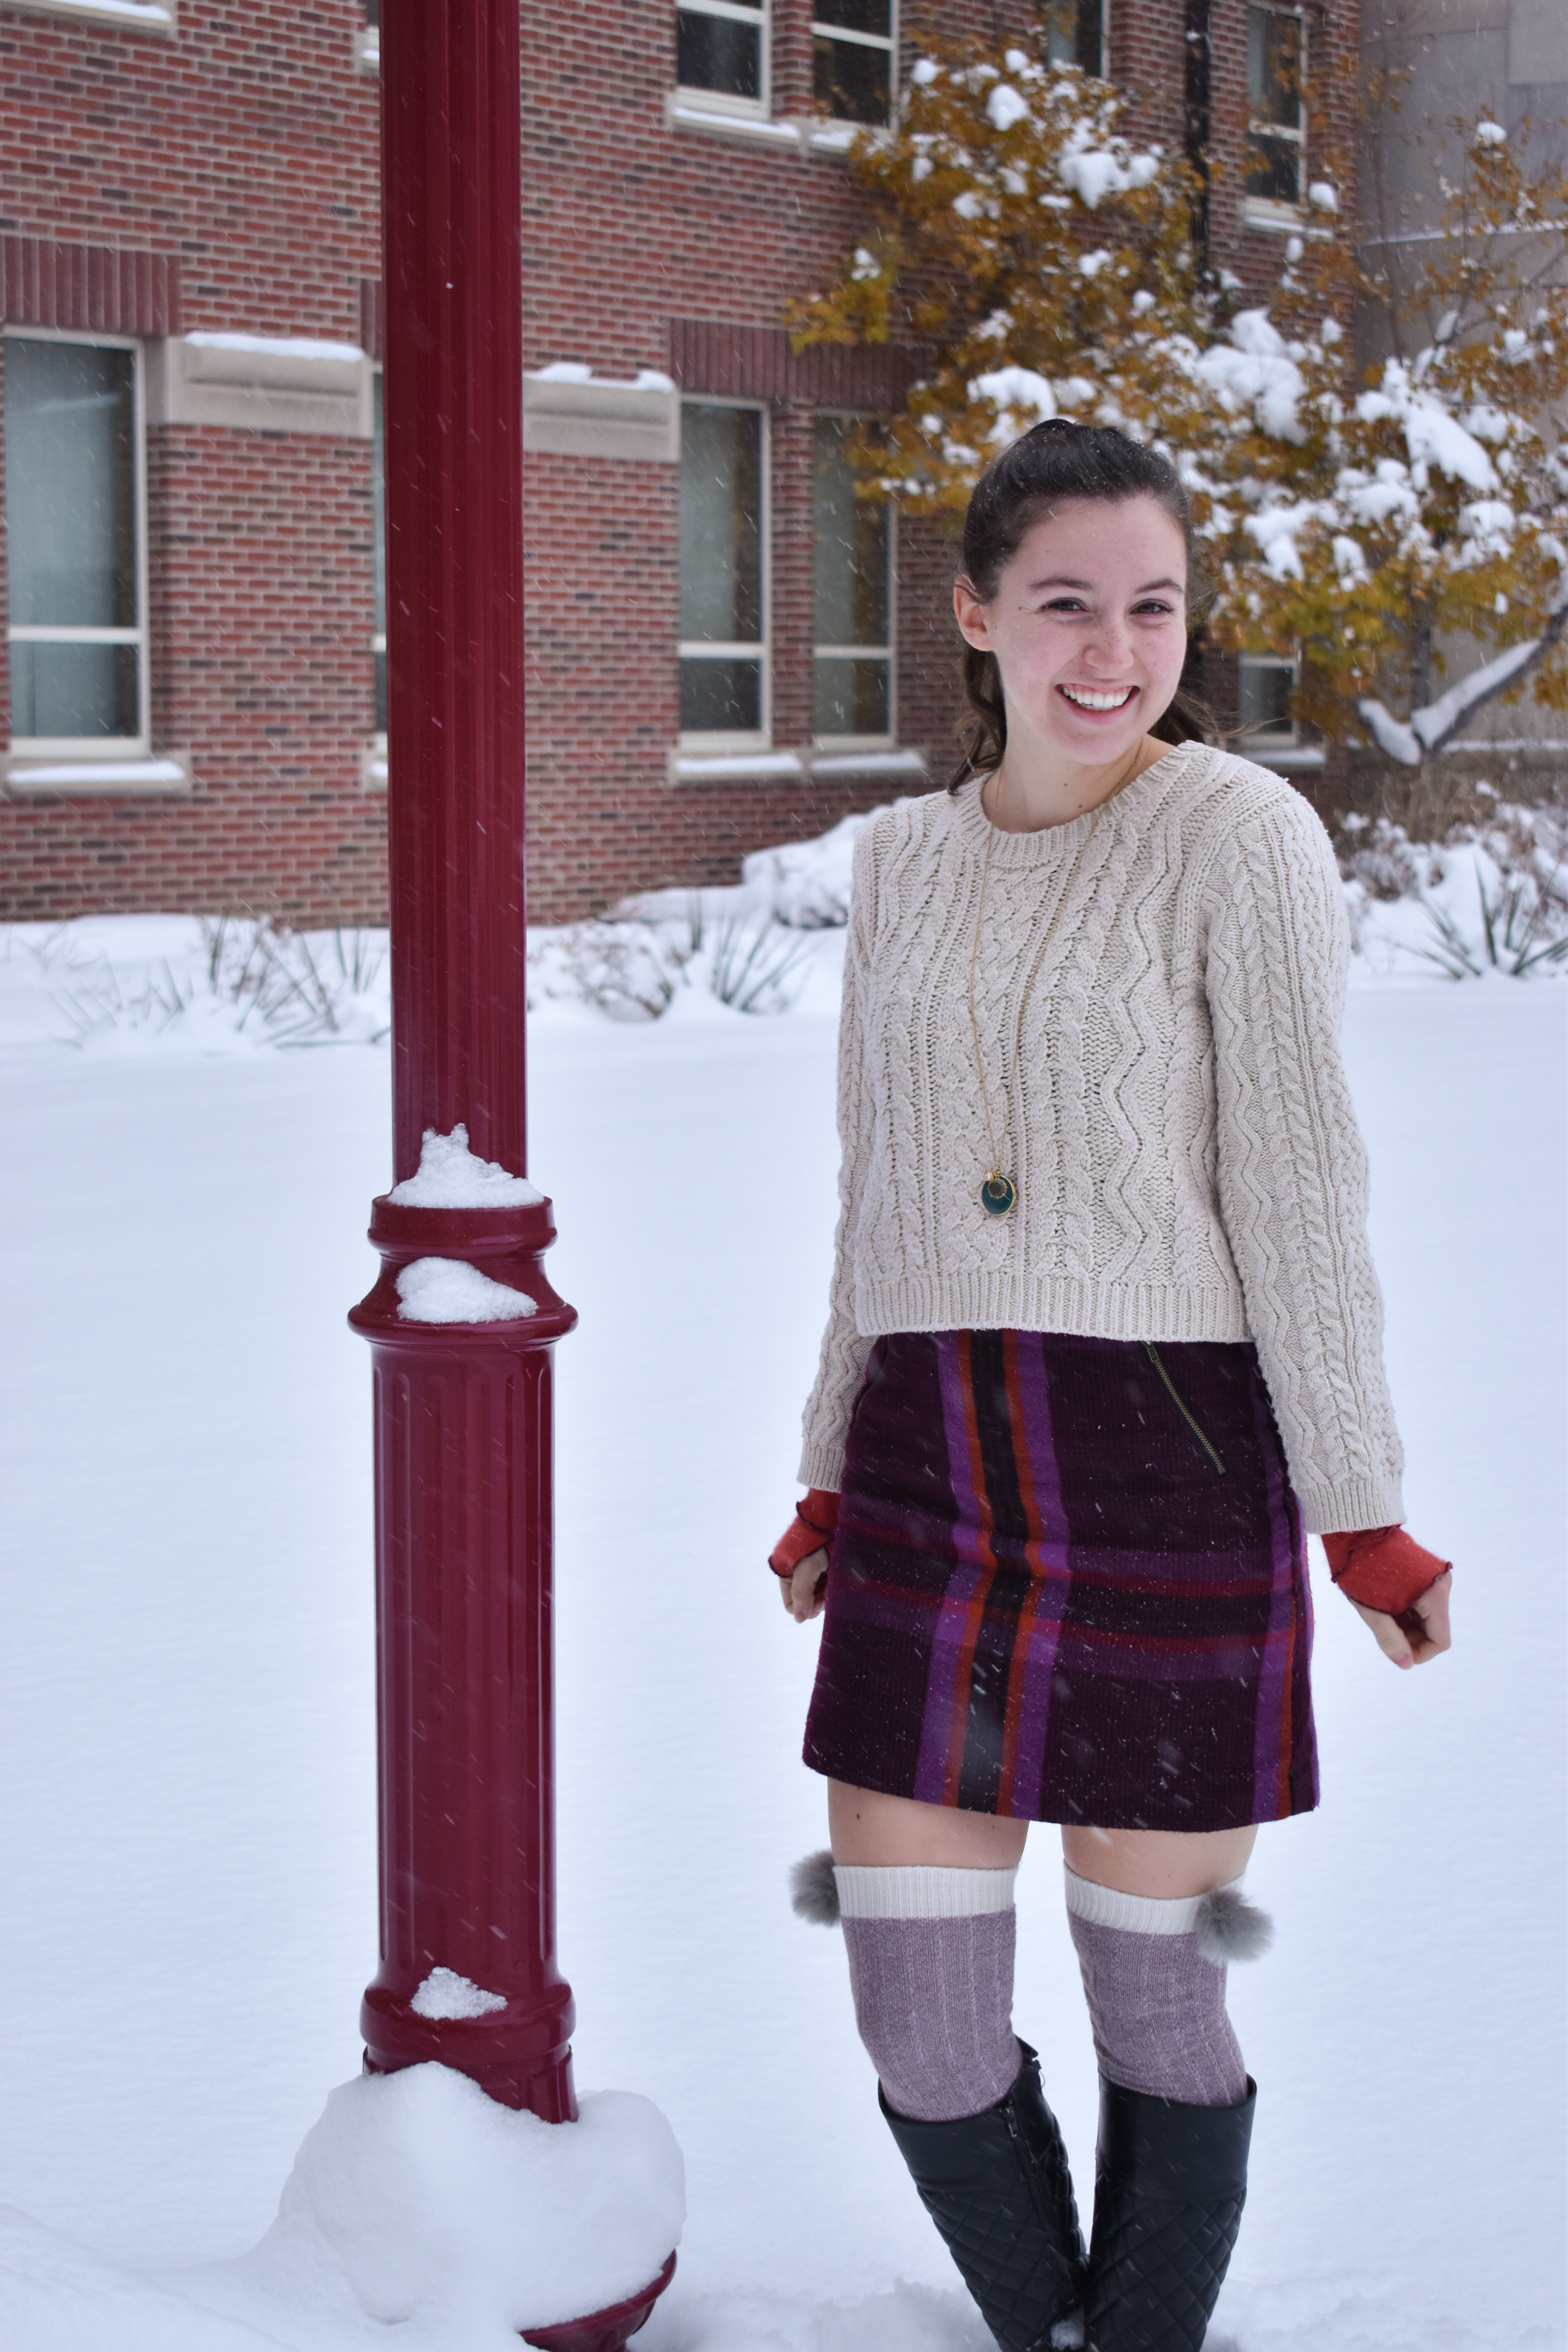 plaid skirt, cableknit sweater, winter outfit, knee socks